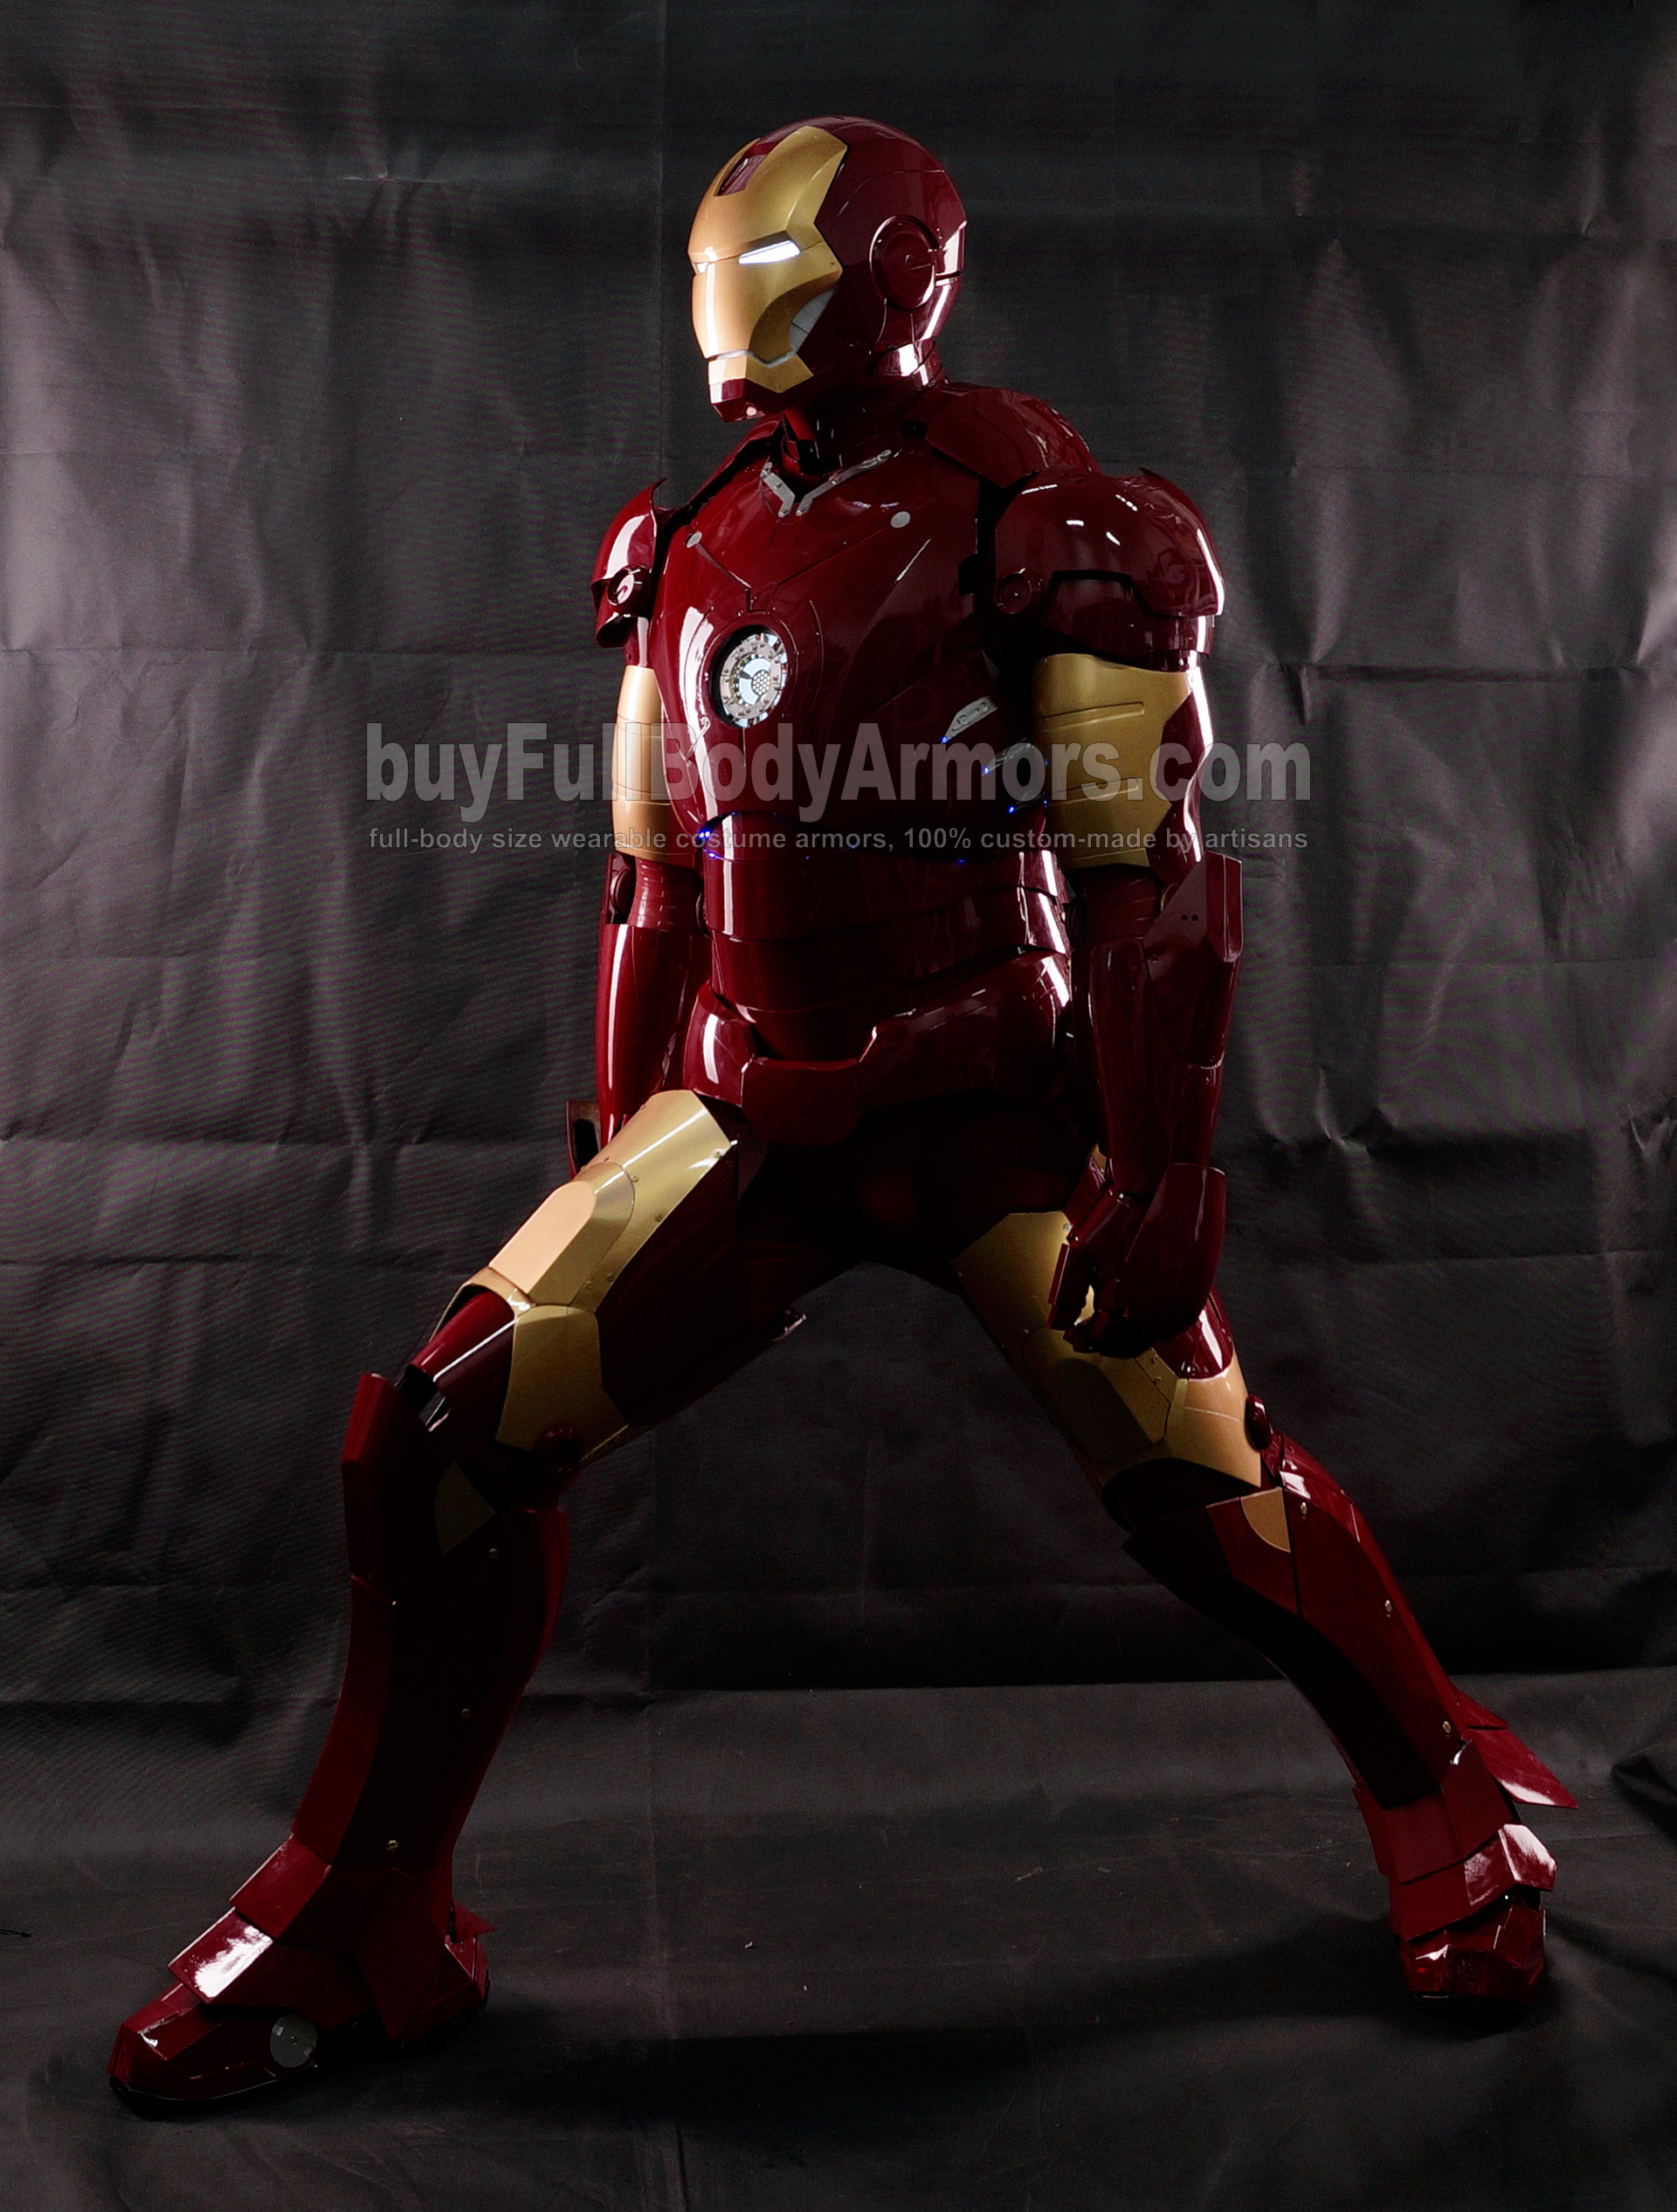 High Definition Photos of the Wearable Iron Man Mark 3 III Armor Costume Suit 6